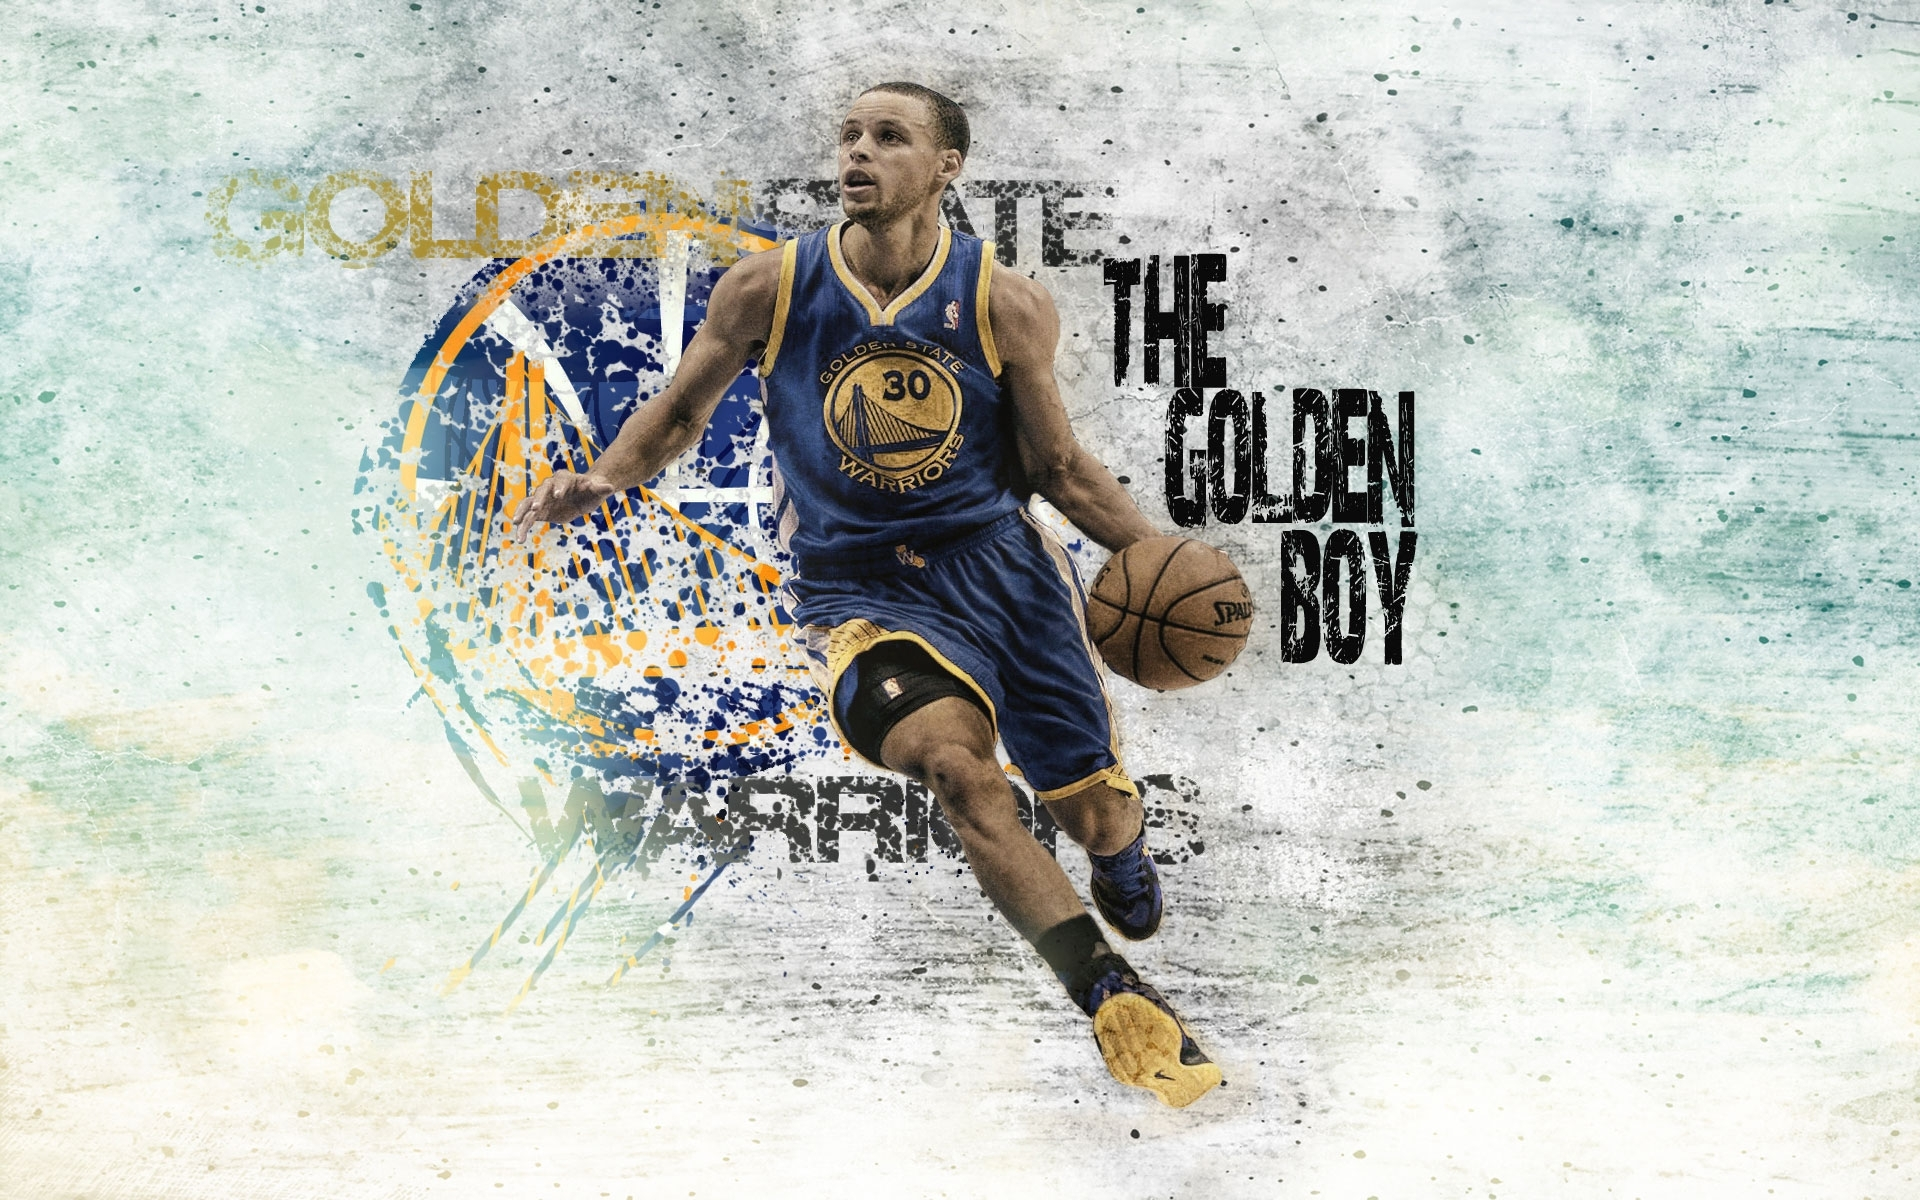 stephen curry wallpaper hd free download | pixelstalk